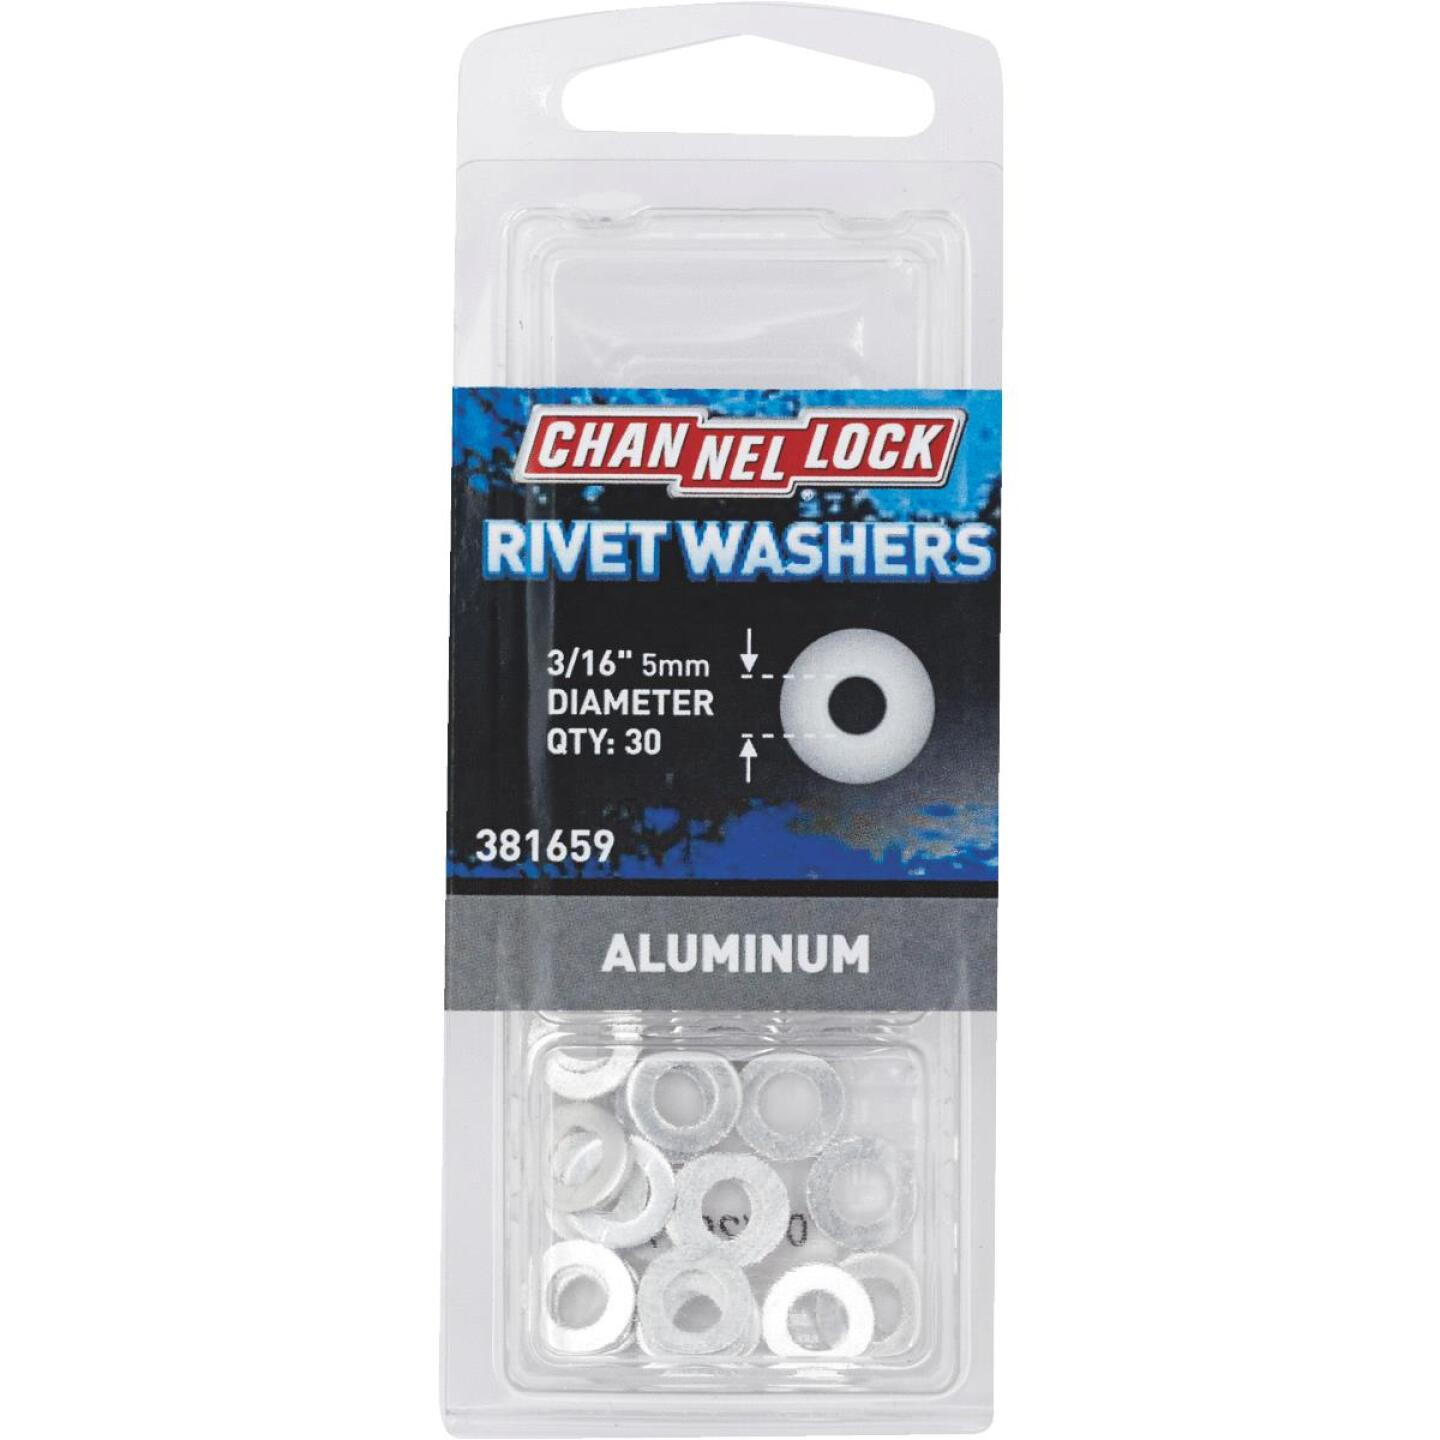 Channellock 3/16 in. Aluminum Rivet Washer (30-Pack) Image 1